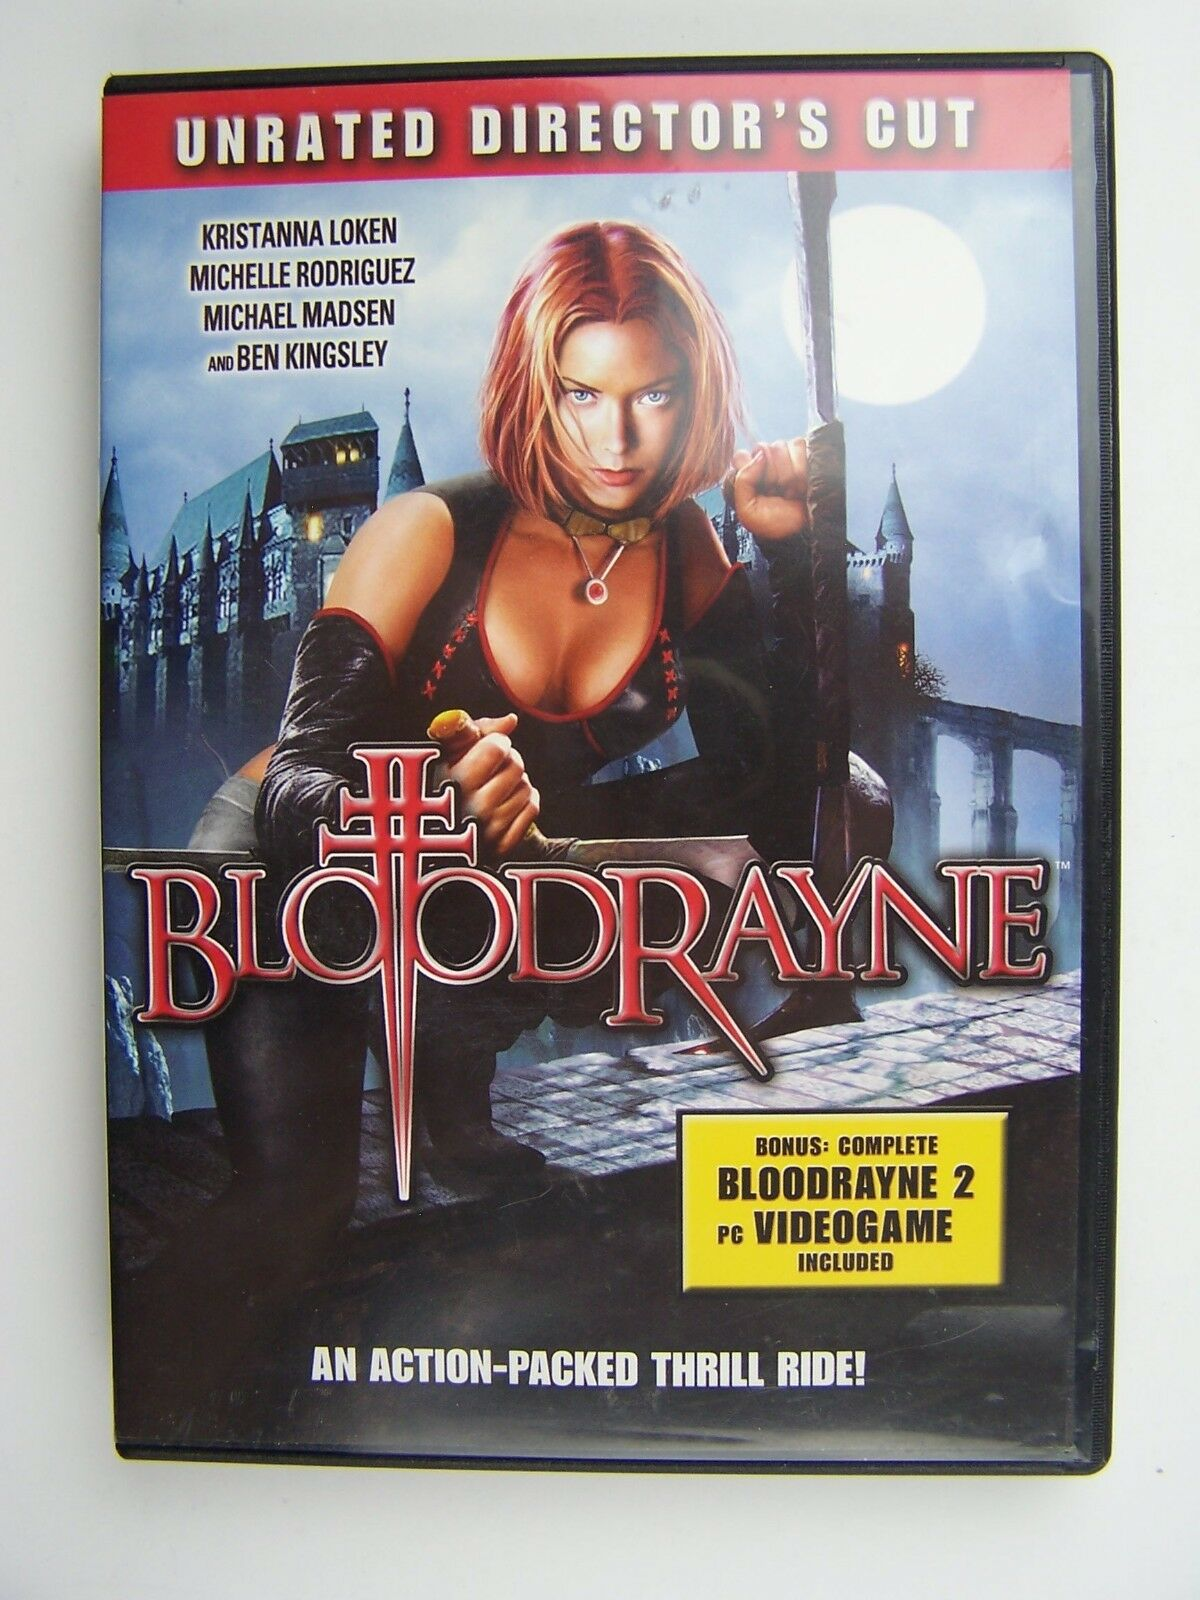 Bloodrayne Unrated Director's Cut DVD 689721390289